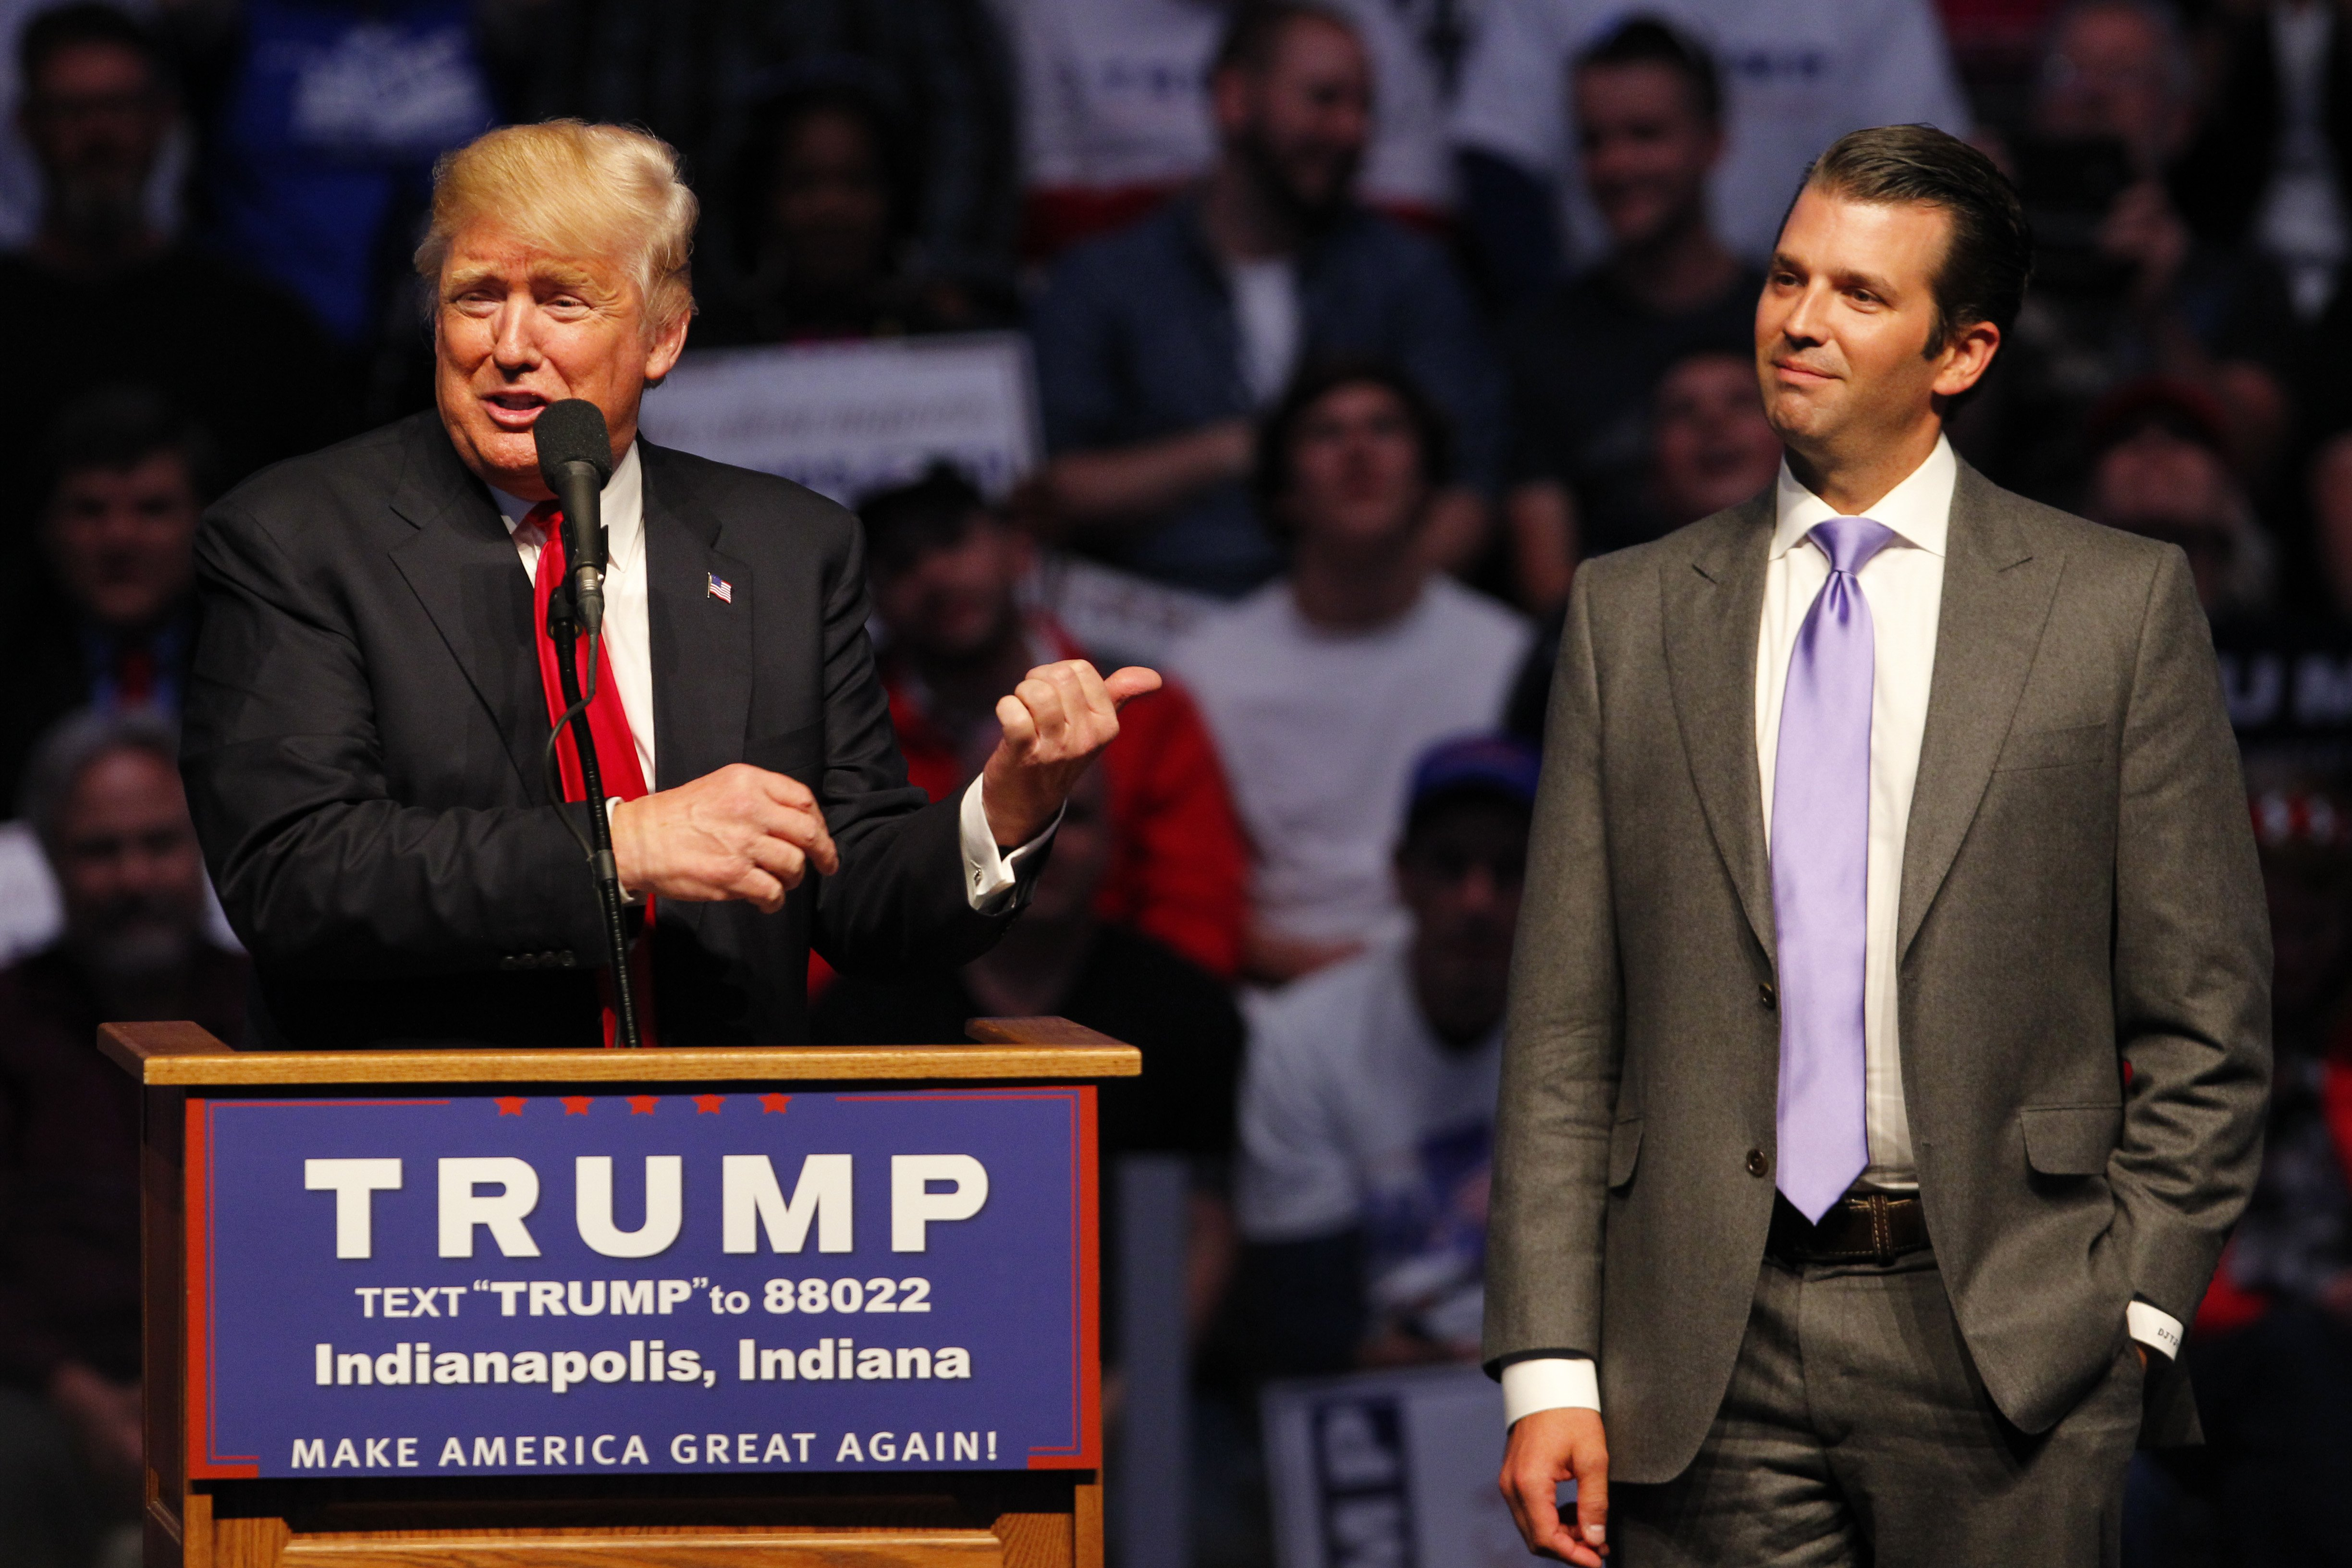 Donald Trump and his son Donald Trump Jr at a campaign rally in Indianapolis, Indiana on April 27, 2016 | Photo: Getty Images